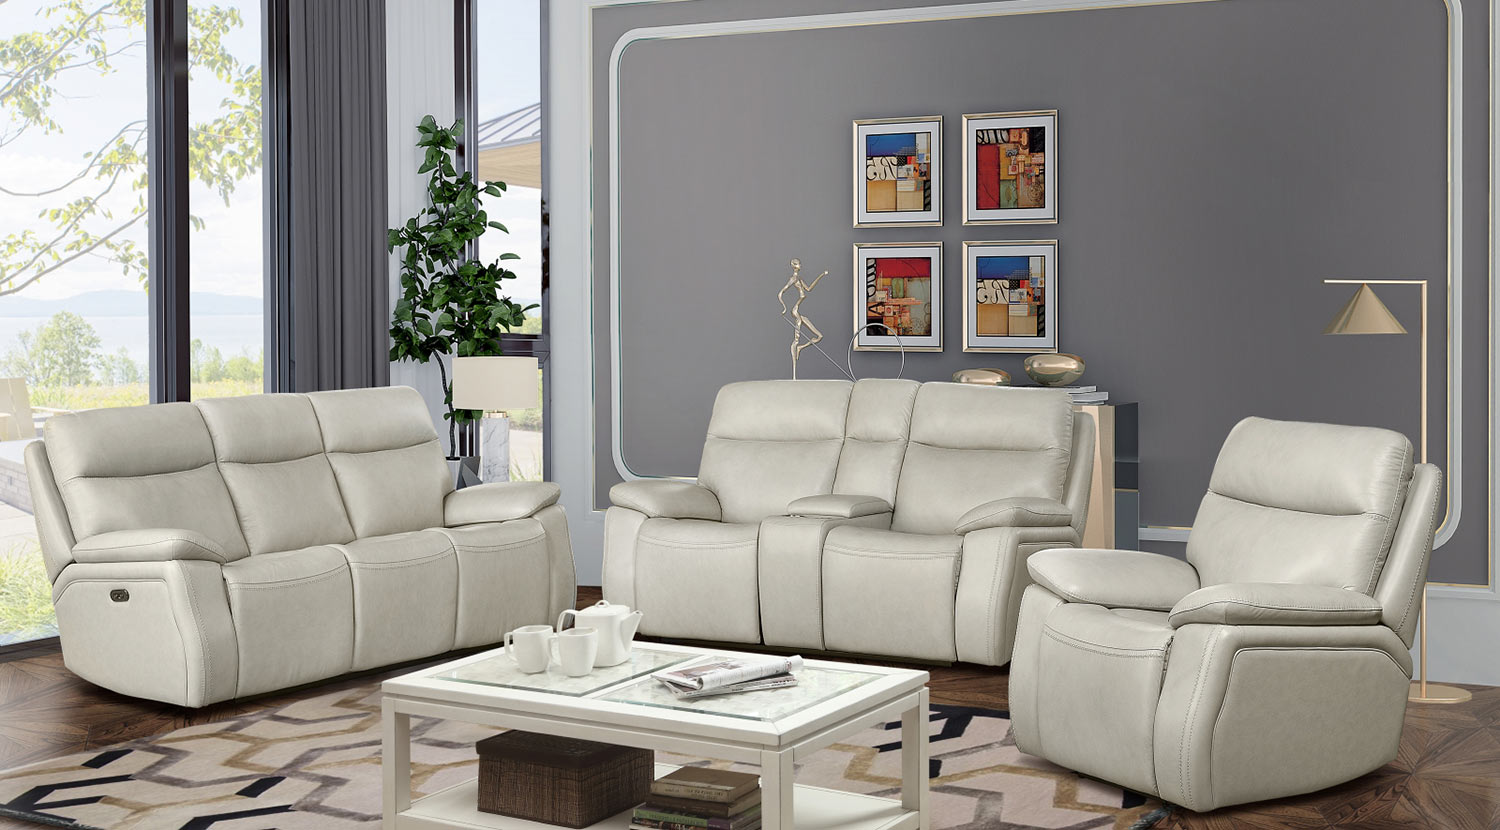 Barcalounger Micah Power Reclining Sofa Set with Power Head Rests - Venzia Cream/Leather Match